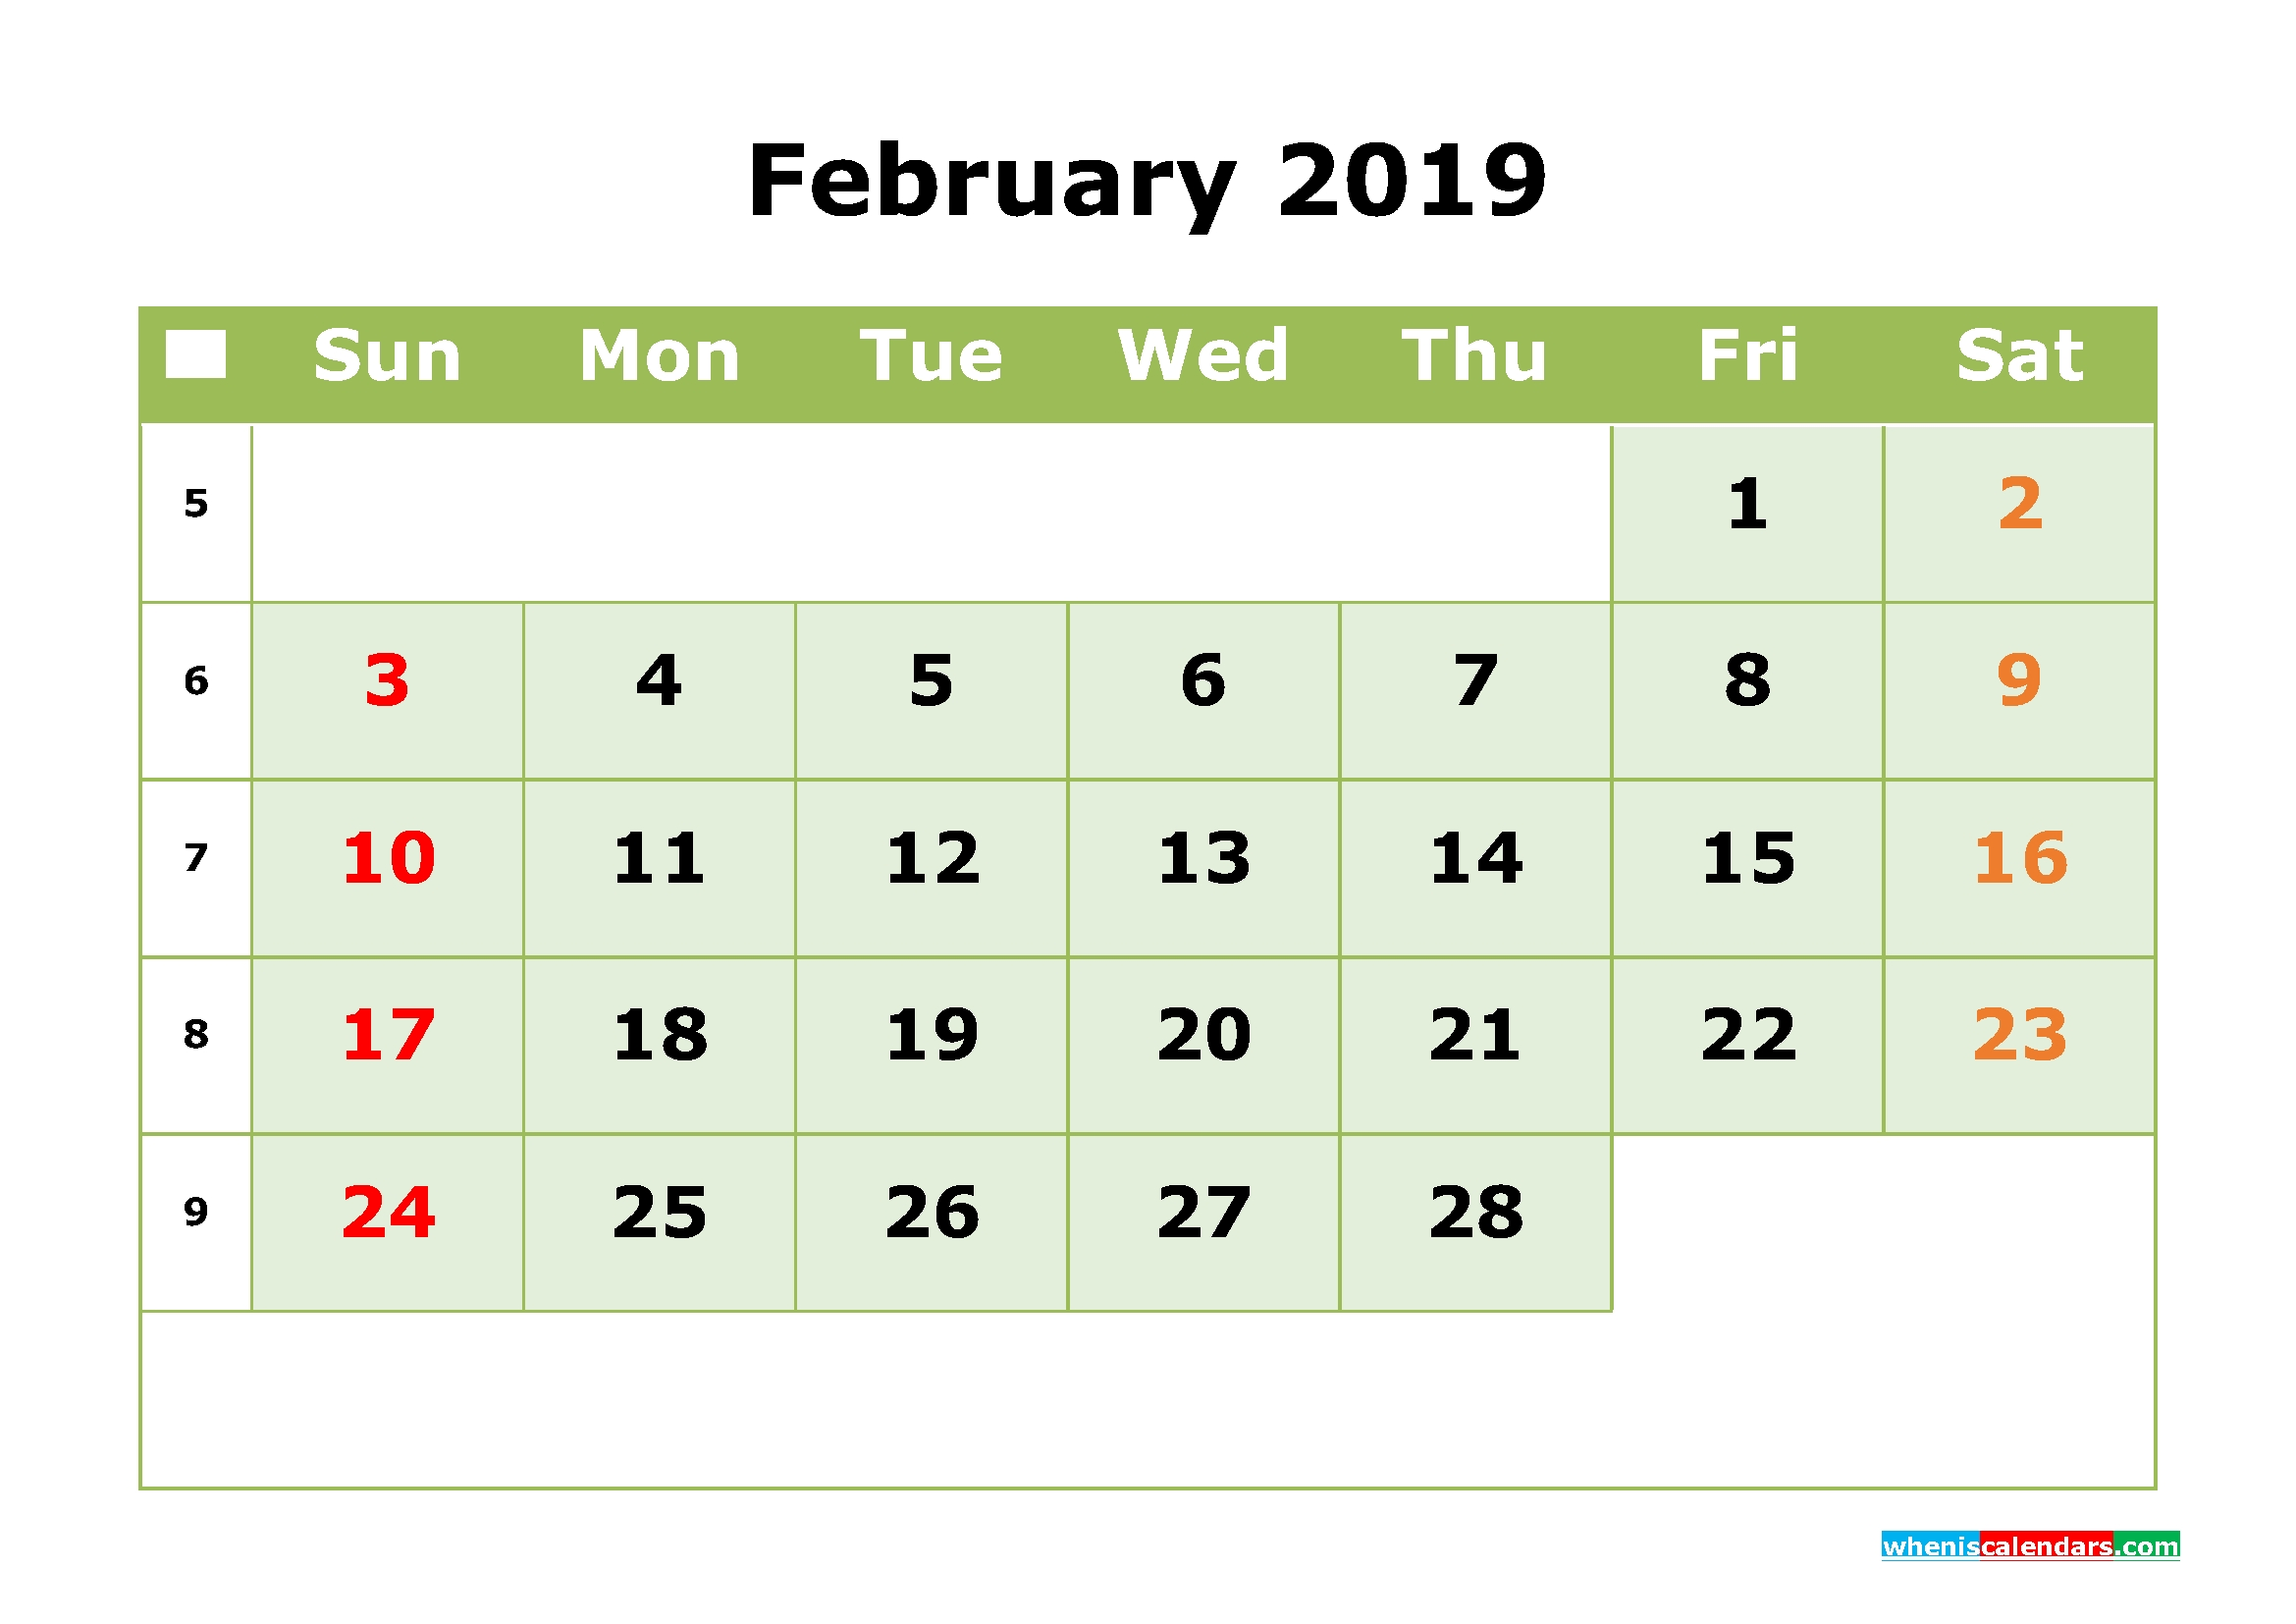 February 2019 Printable Calendar Monthmonth Calendar Template pertaining to Printable Calendar Month By Month